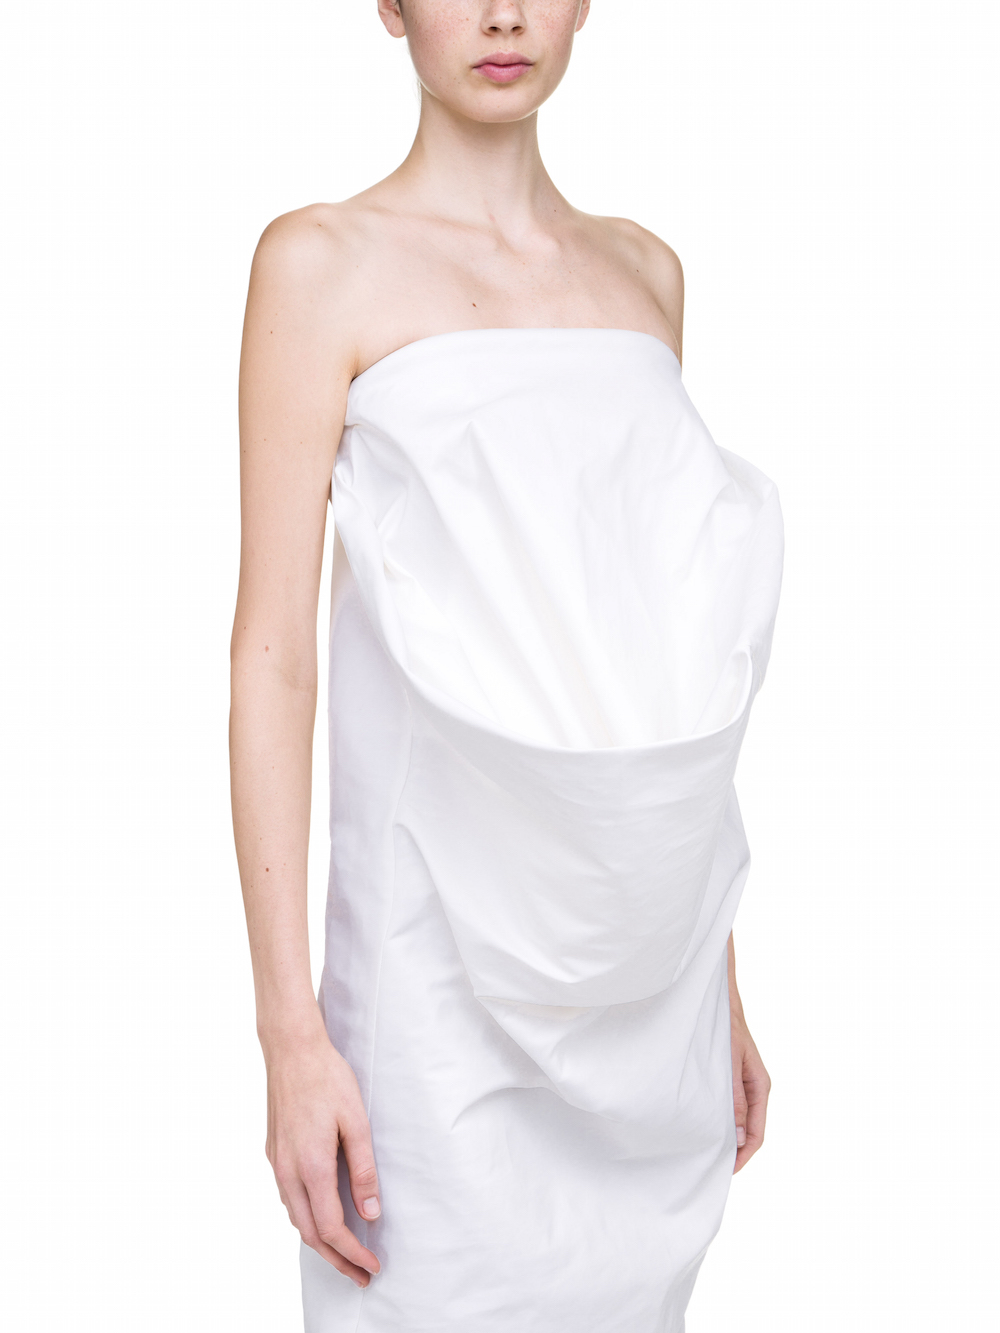 RICK OWENS THAYAHT STRAPLESS DRESS IN WHITE